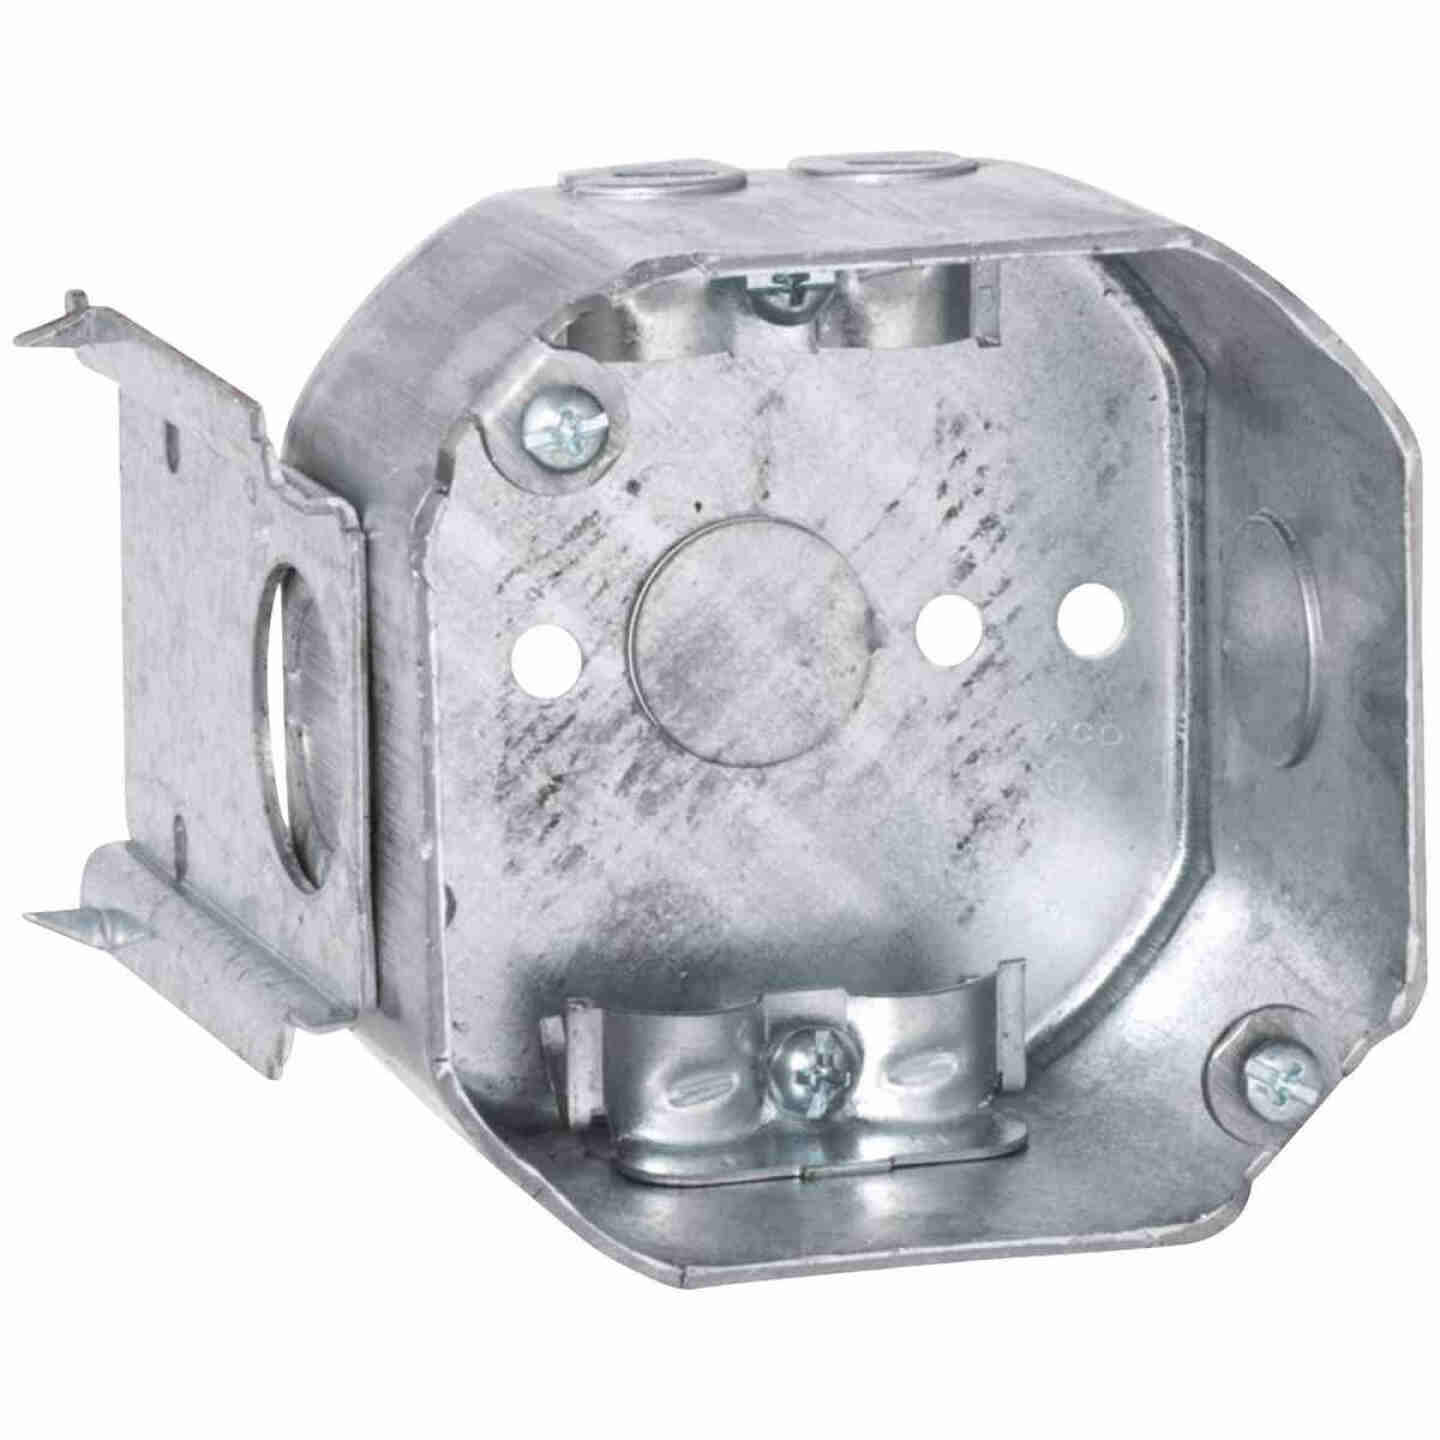 Raco Bracket 4 In. x 4 In. Octagon Box Image 1